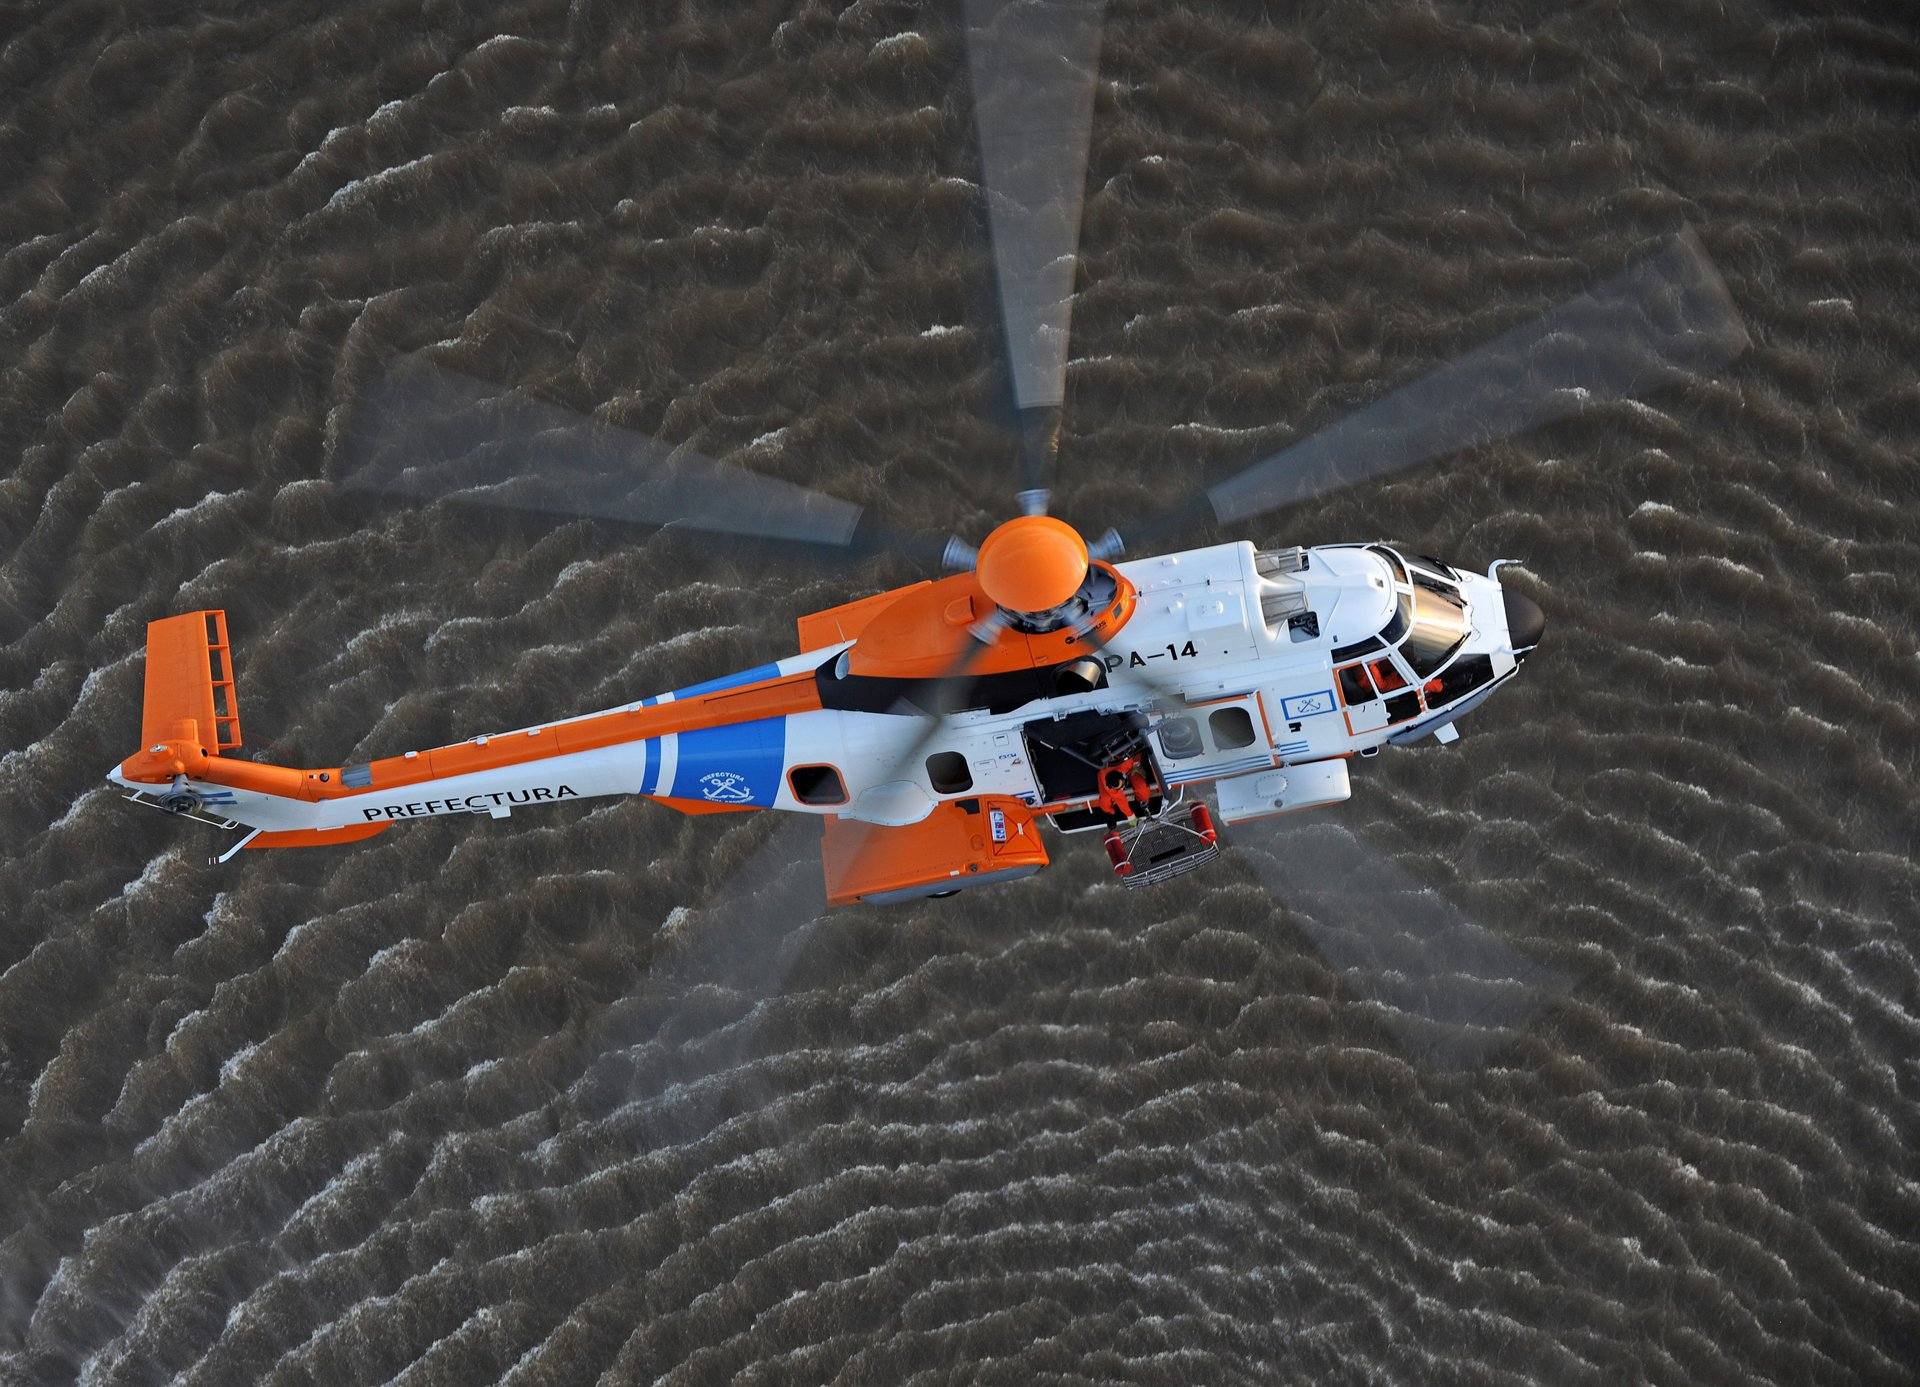 H225 for search and rescue missions